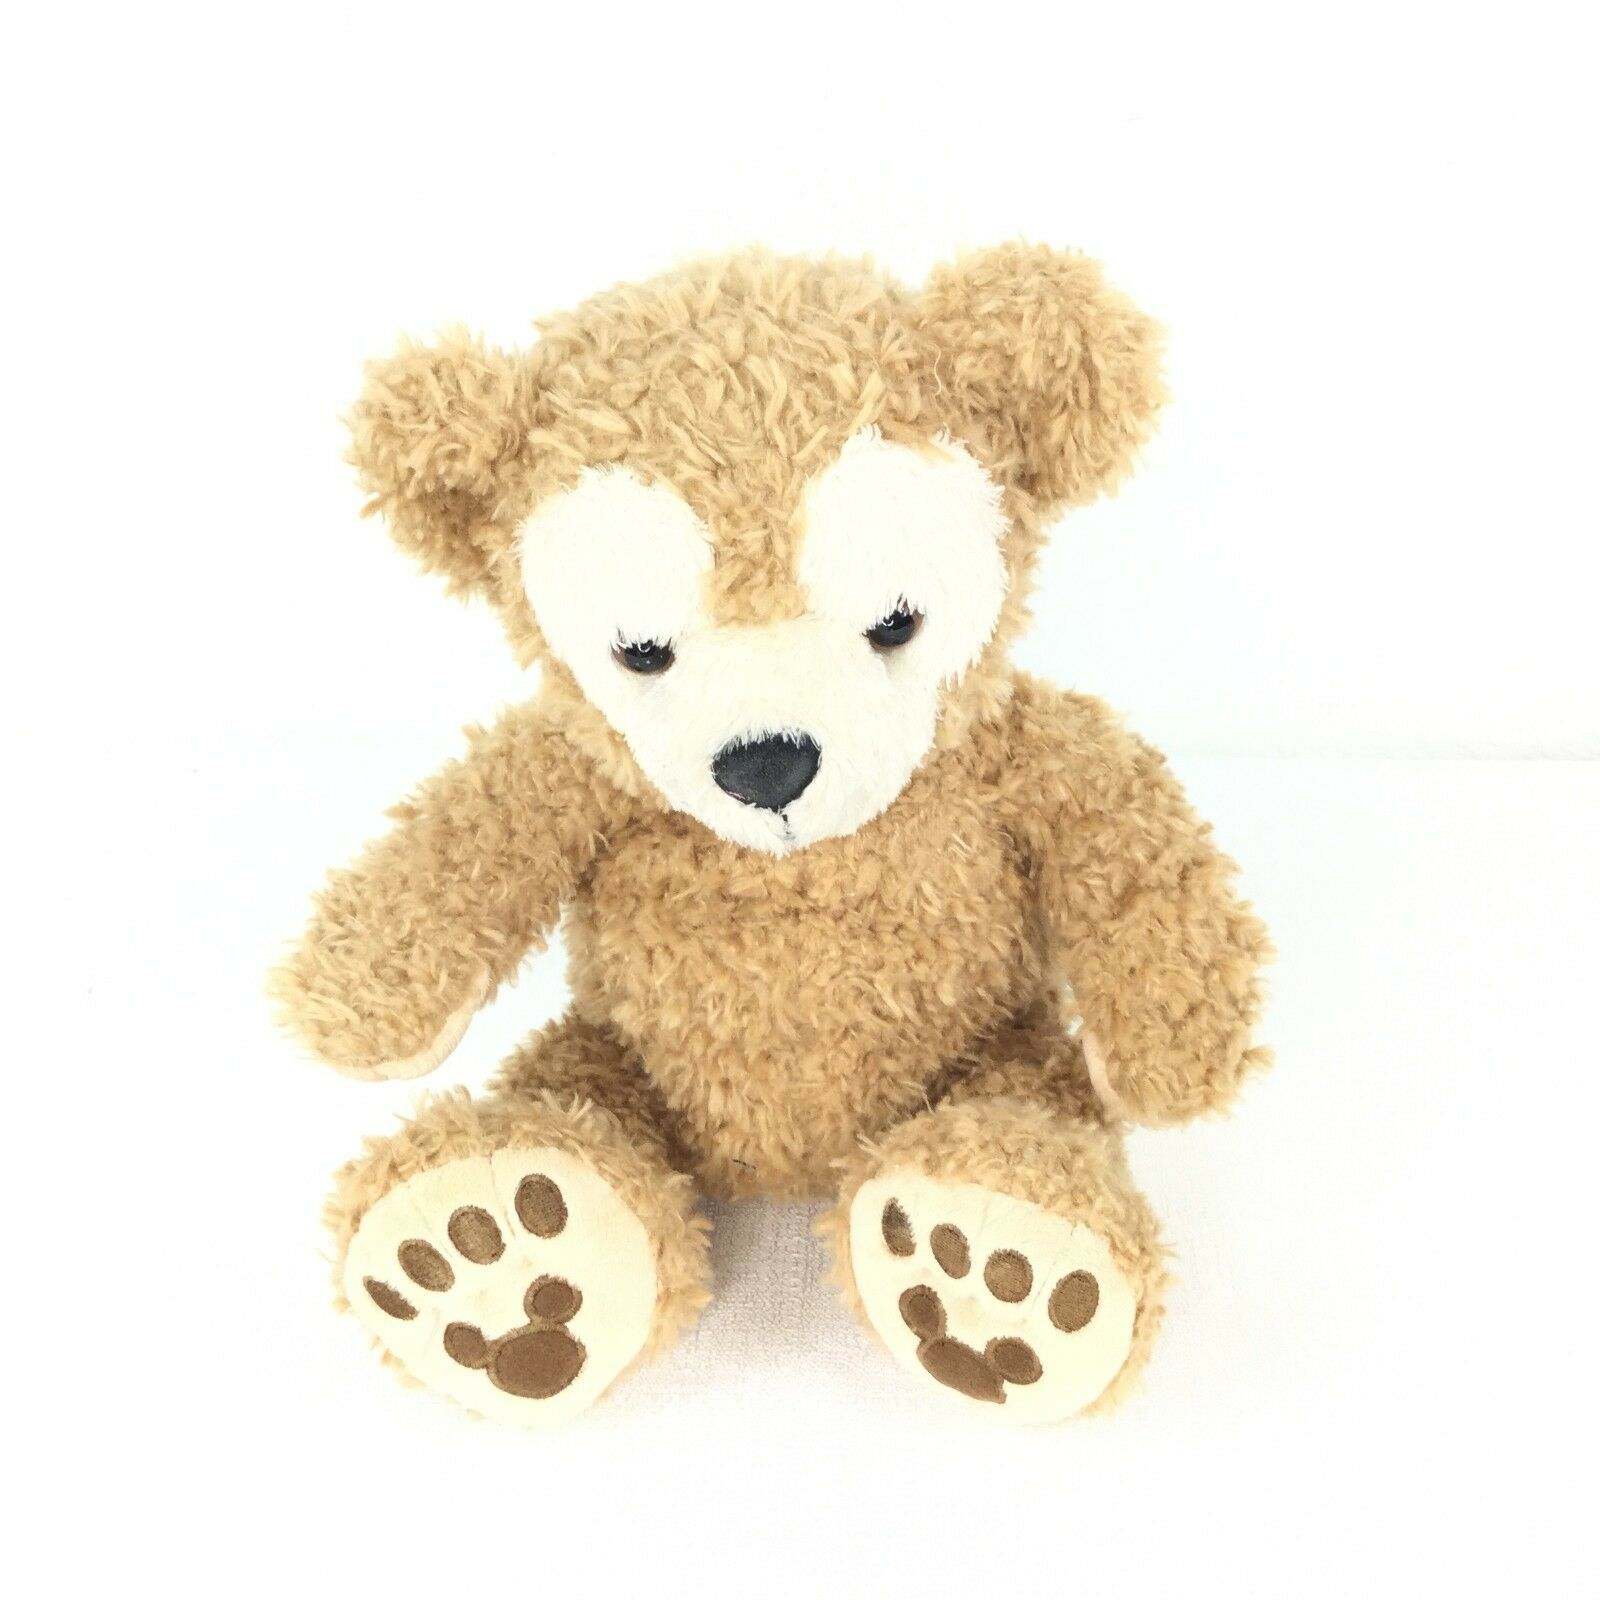 Duffy the Disney Bear Plush Brown 8 X 12.5 In image 1